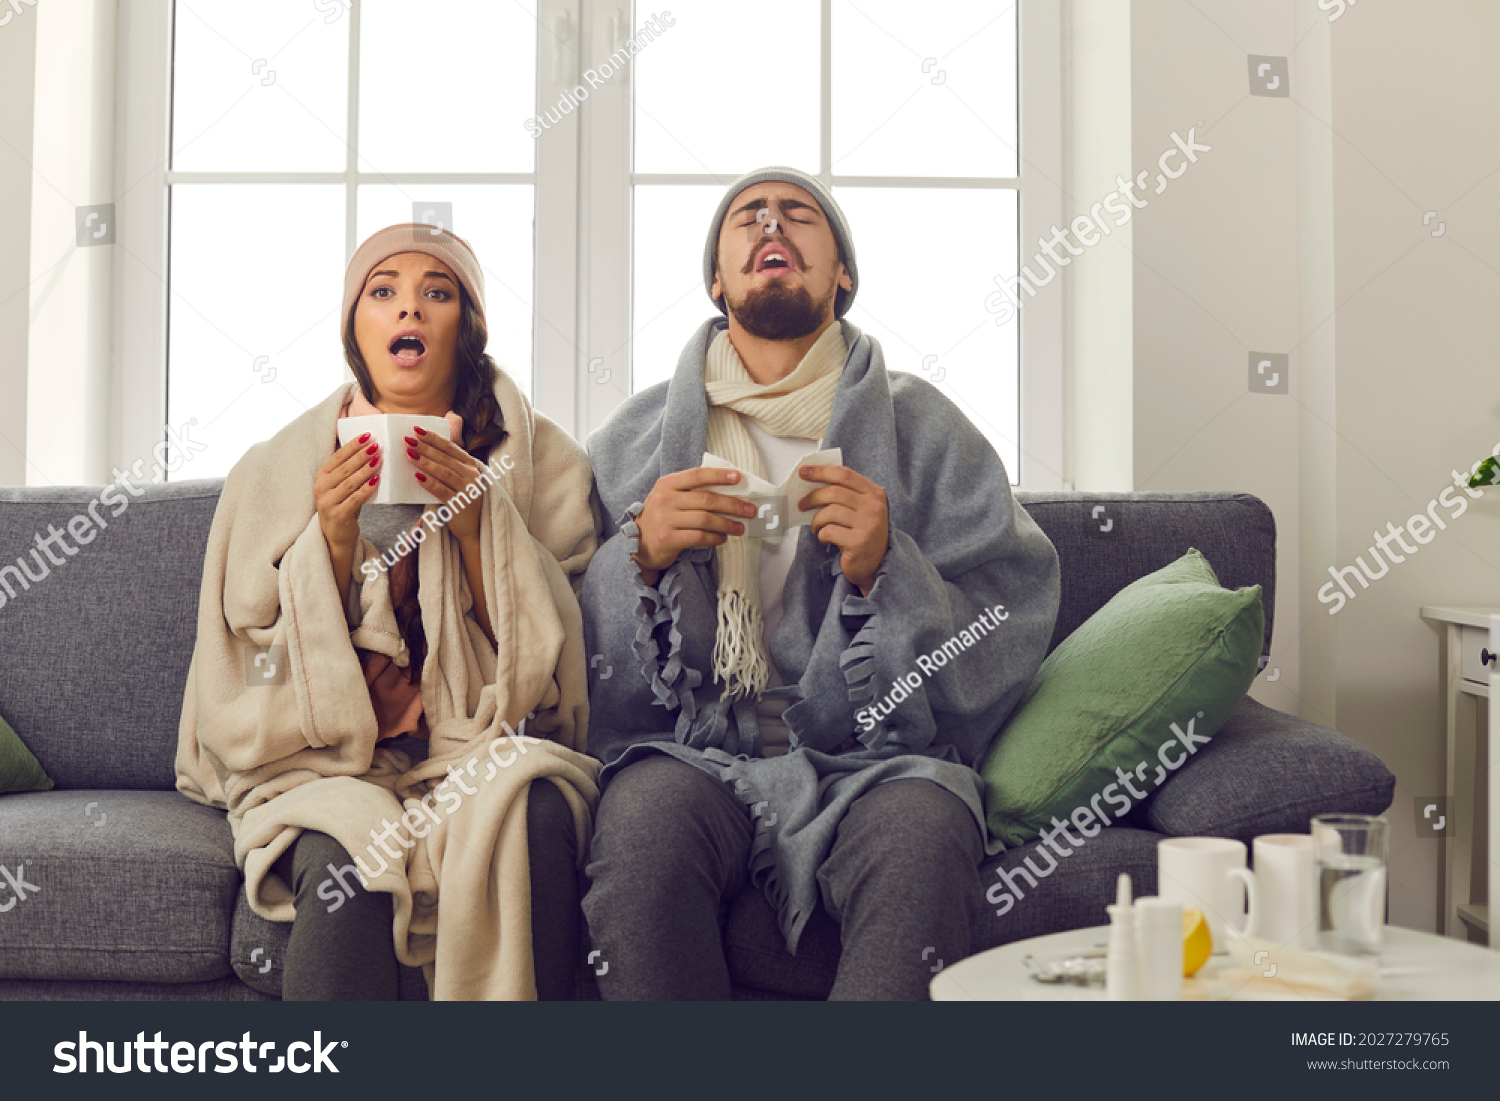 Funny young couple in warm hats, wrapped in blankets, sitting together on couch at home and sneezing in paper tissues. Sick husband and wife suffering from unpleasant symptoms of bad cold or flu virus #2027279765